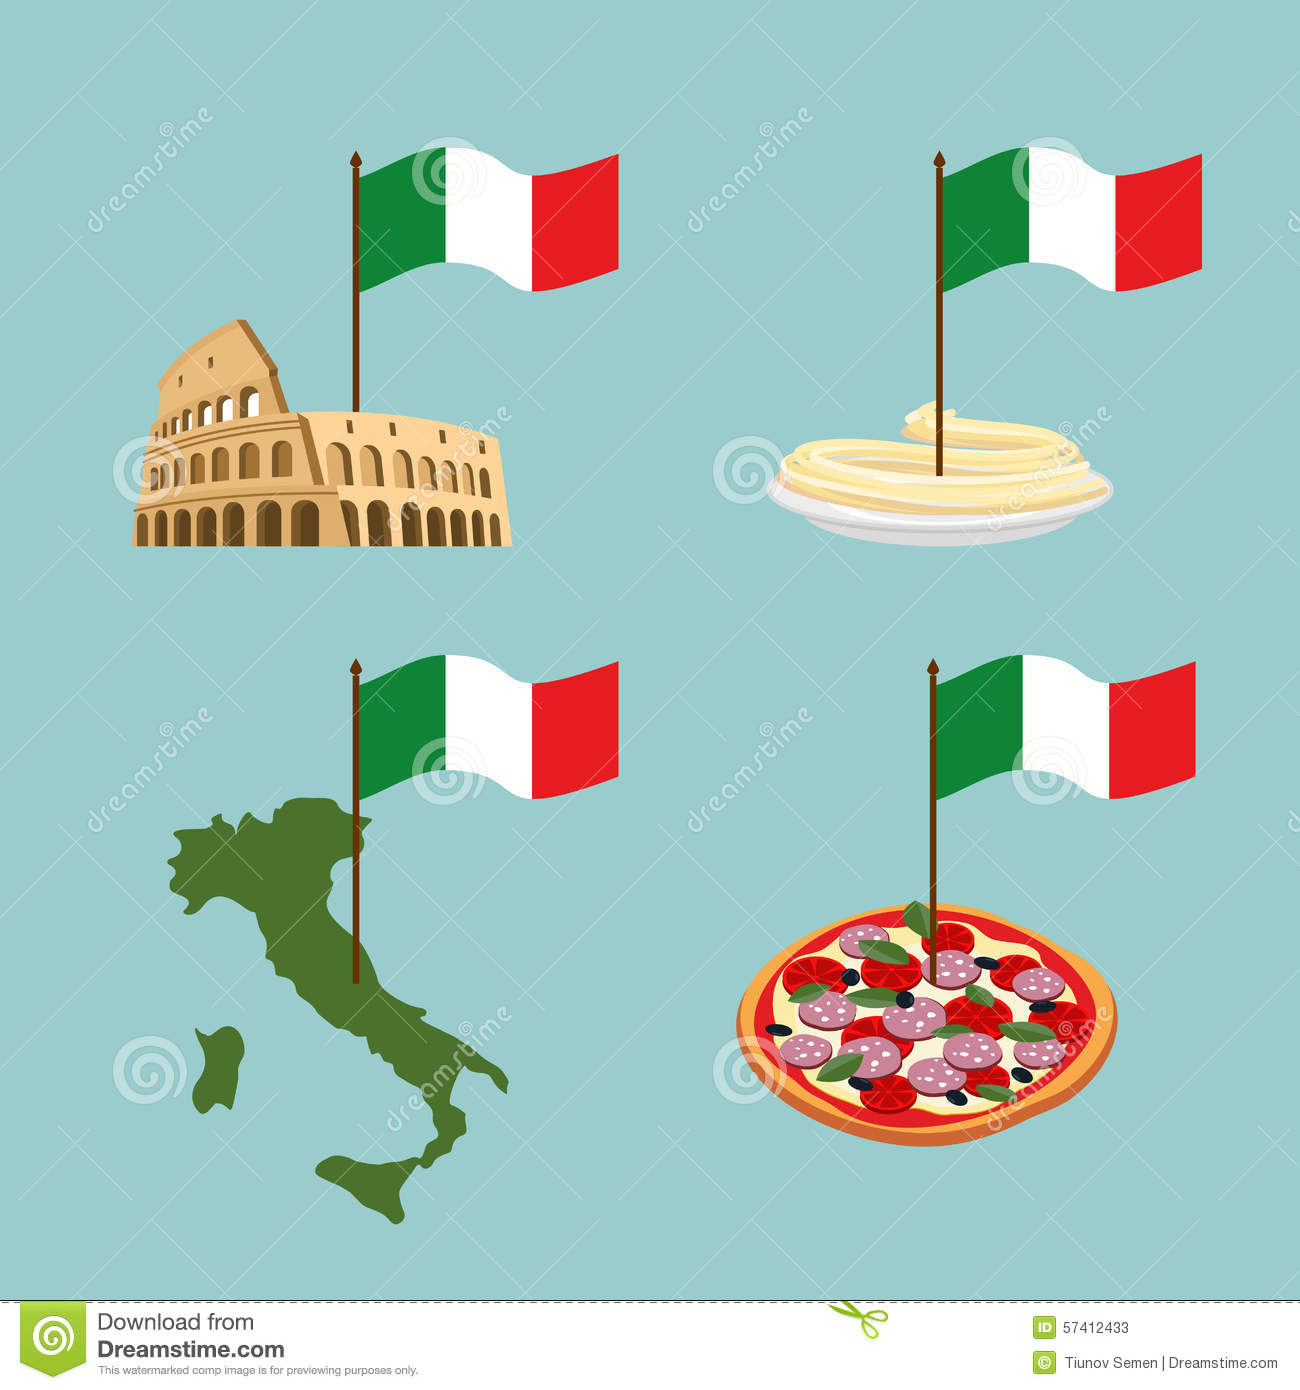 Set icon Italy. Flag and map, pasta and pizza.